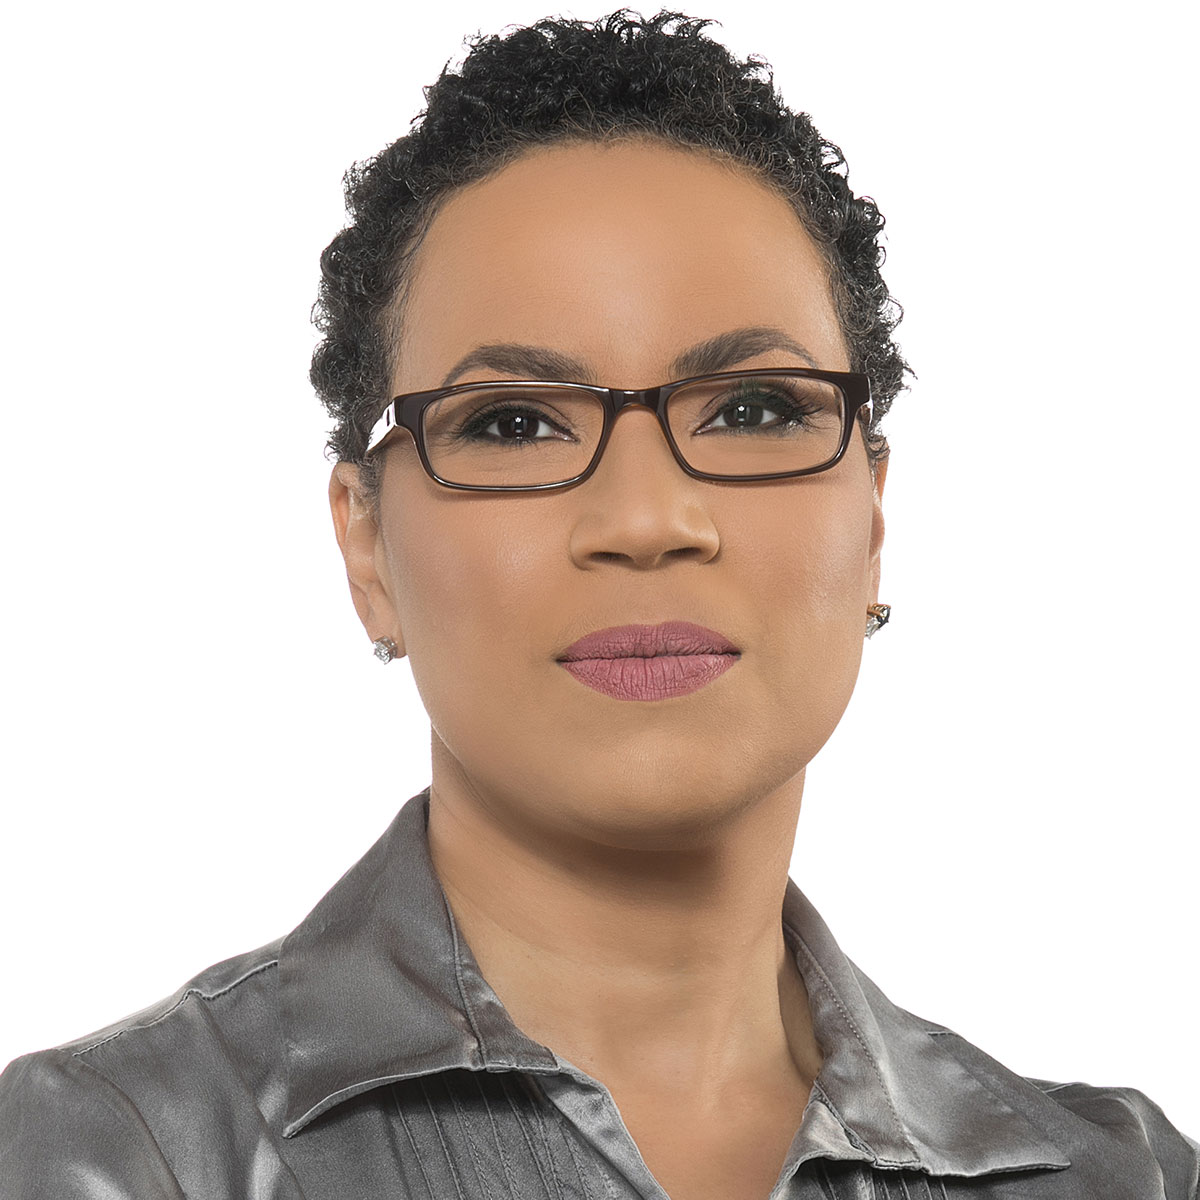 Shauna C. Bryce, former AmLaw100 lawyer, AmLaw 200 hiring attorney, and in-house counsel - Founder and Principal